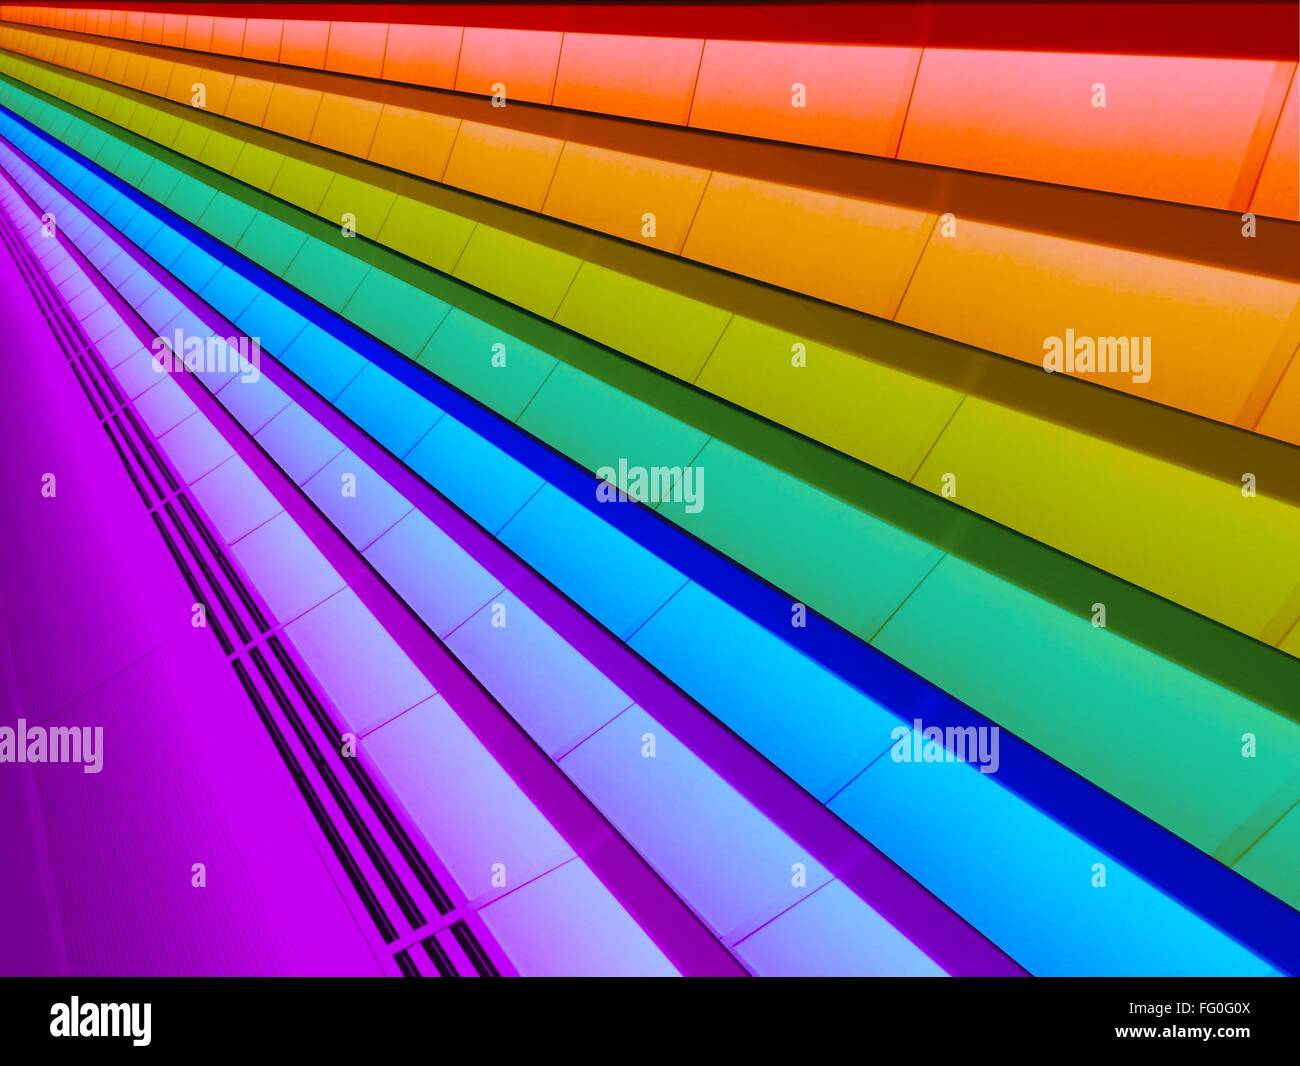 Low Angle View of Multi Colored Baies Photo Stock